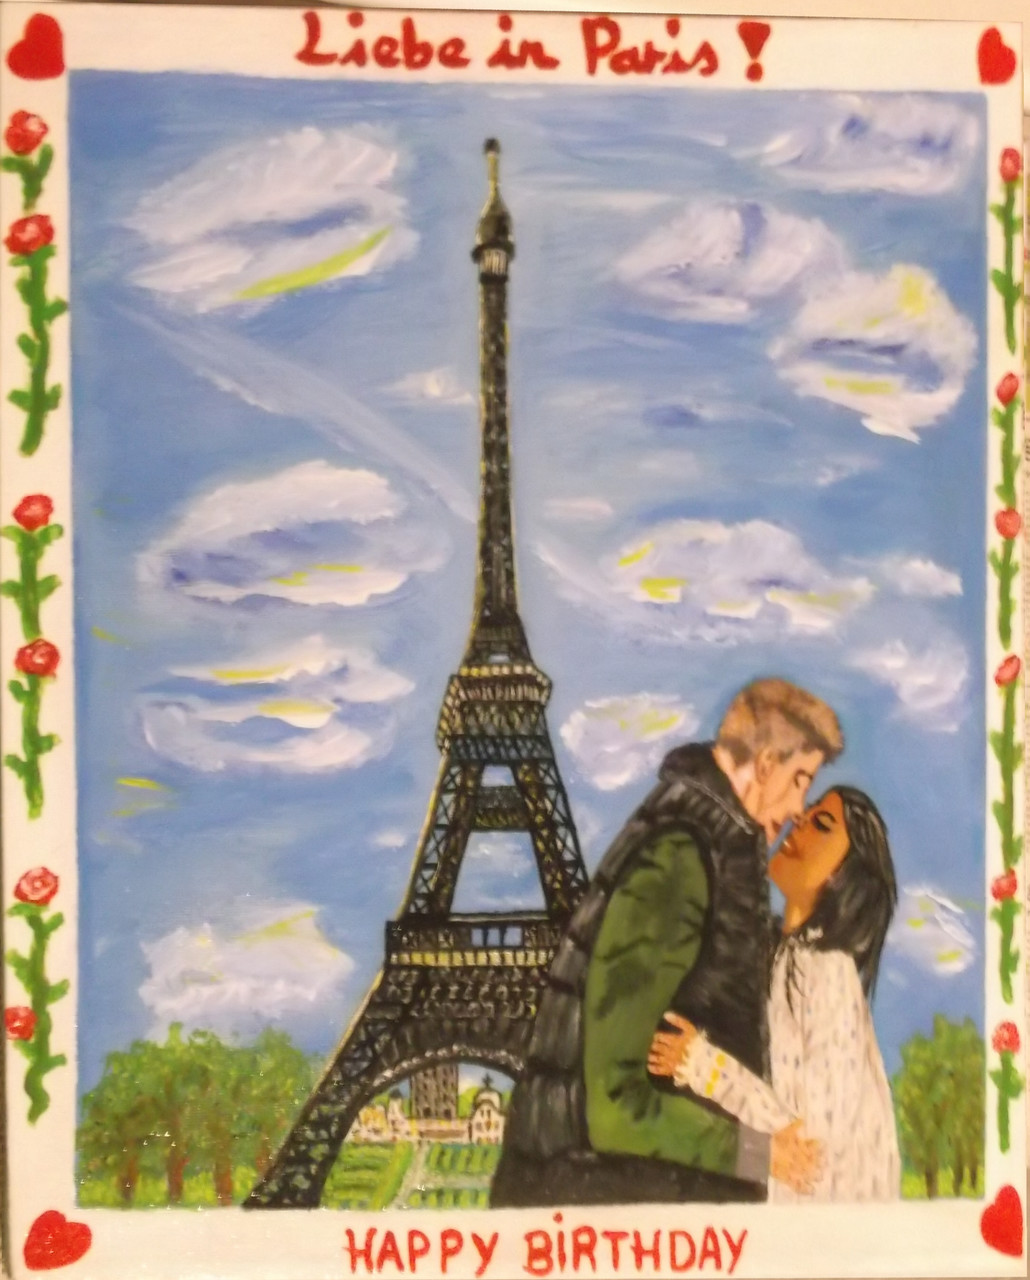 Liebe in Paris 50 x 70 cm Leinwand